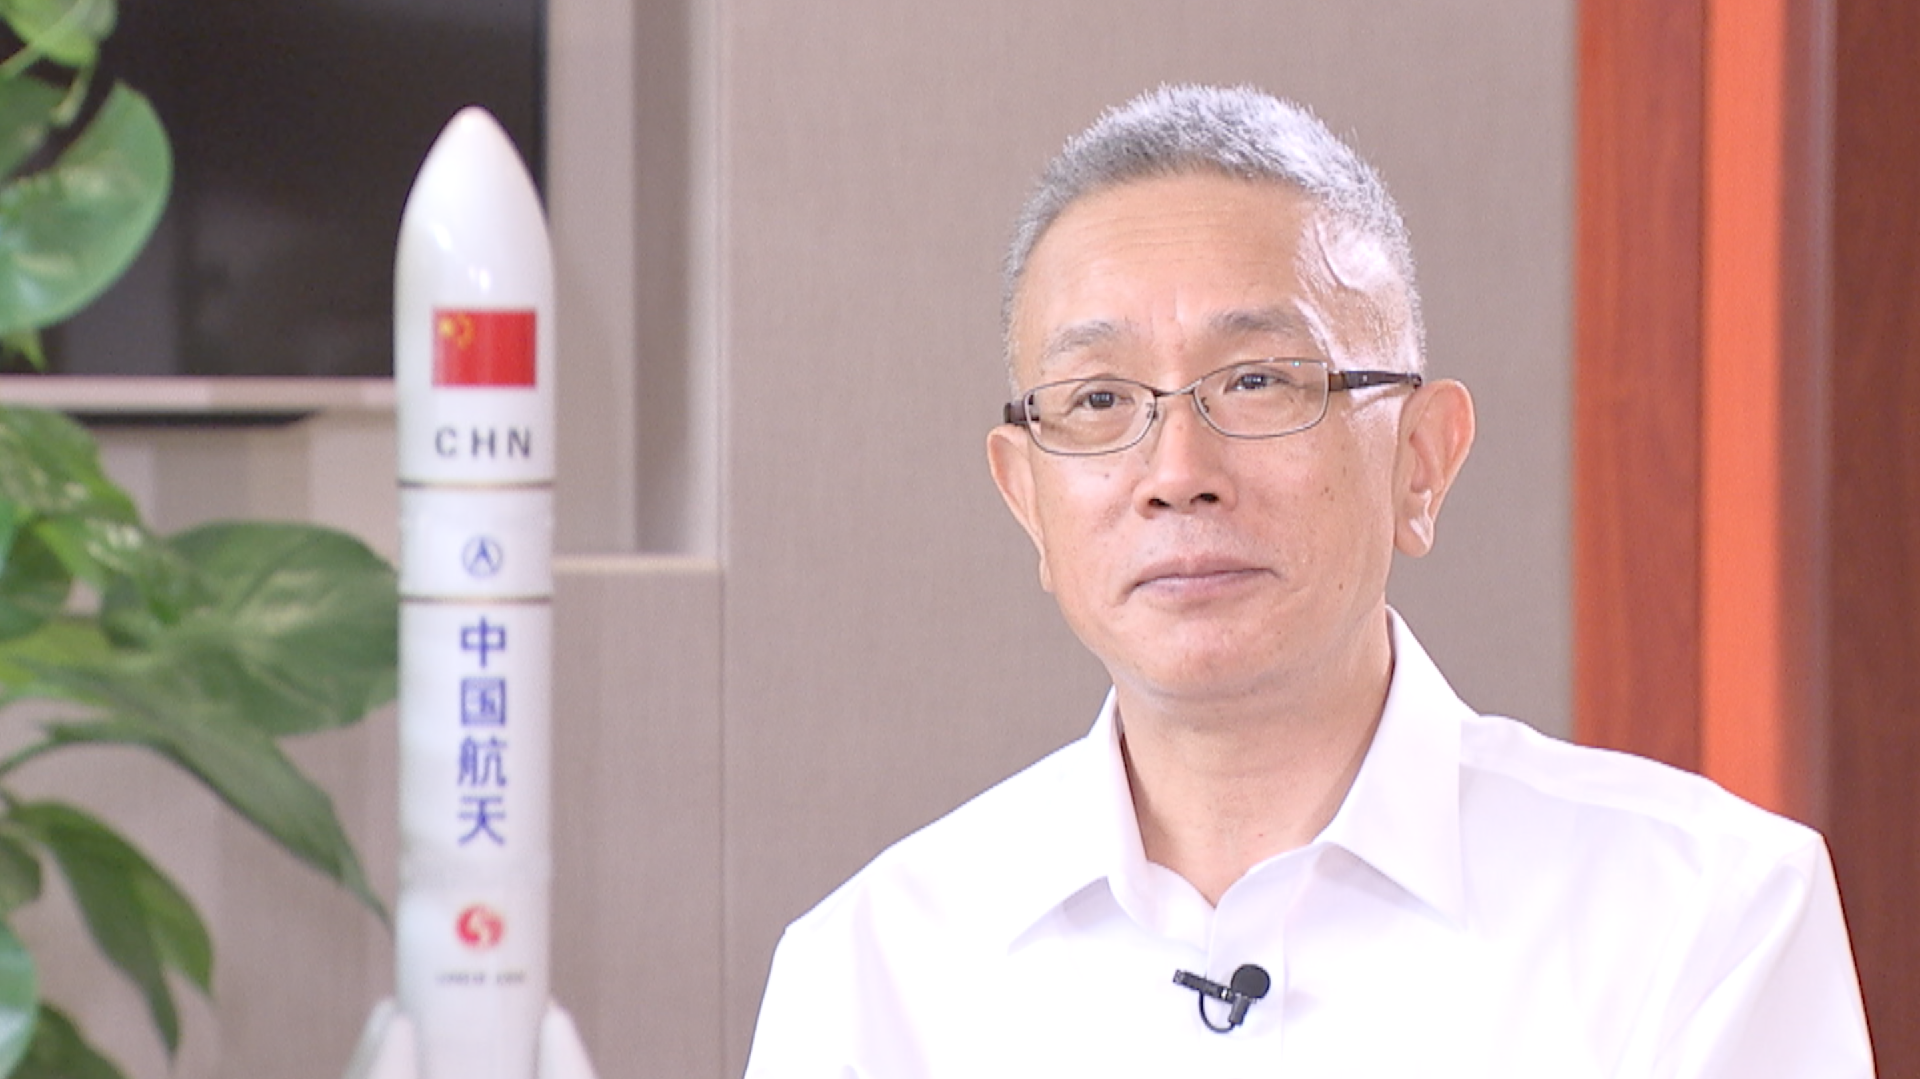 Tianwen-1 prepares the ground for new interplanetary expeditions